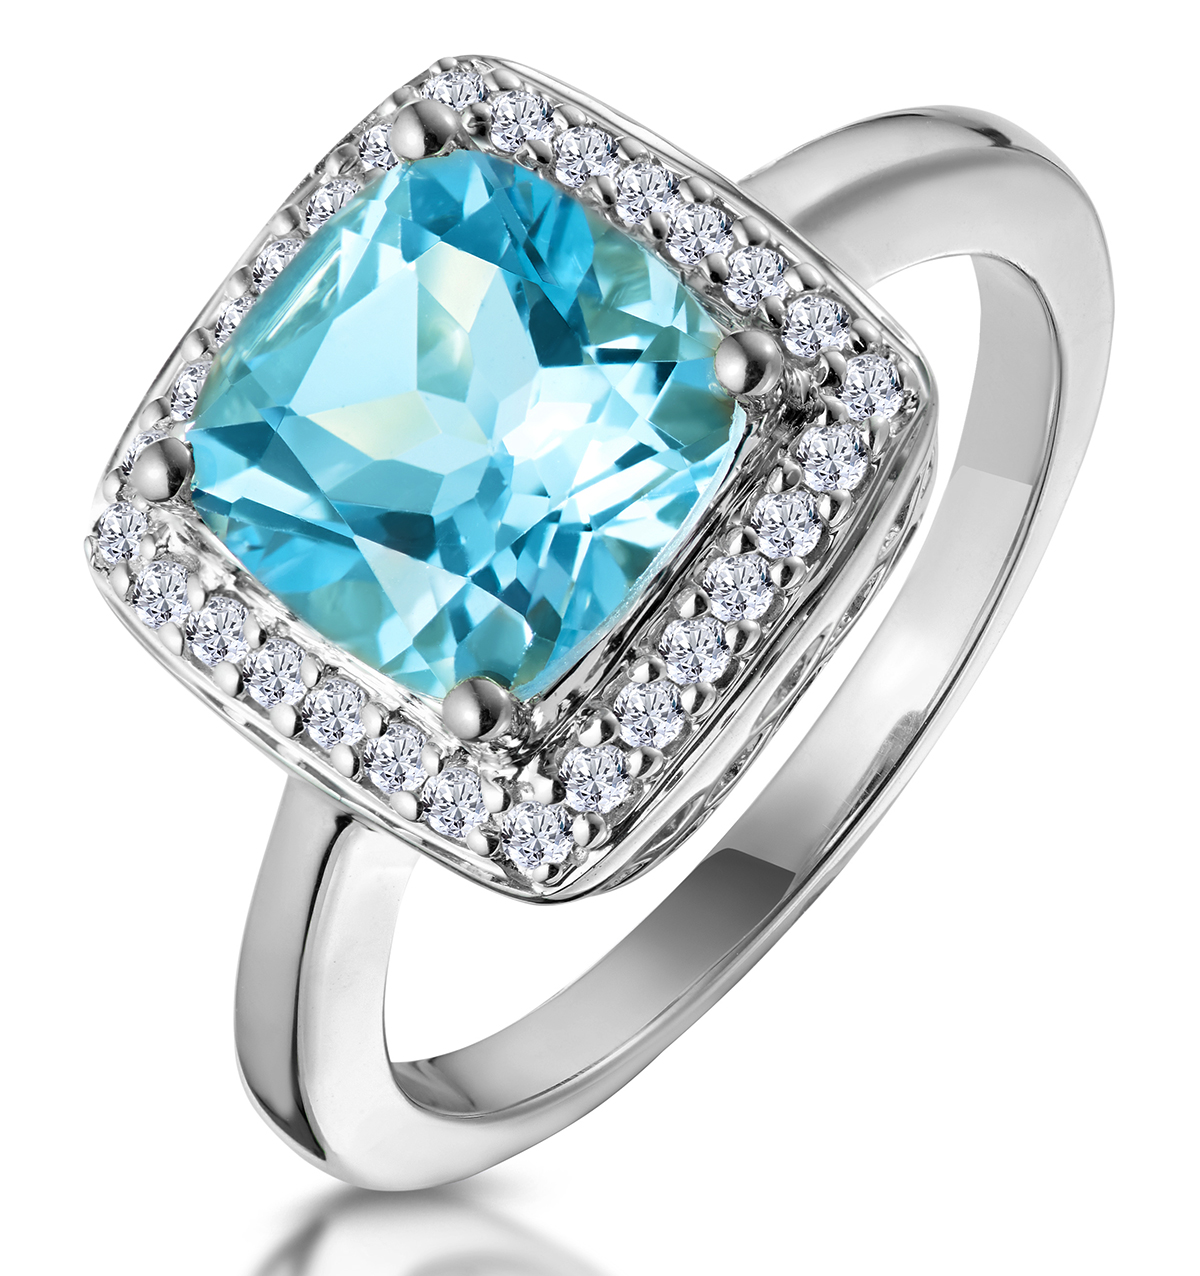 2CT BLUE TOPAZ AND DIAMOND STATEMENT RING 18KW - ASTERIA COLLECTION